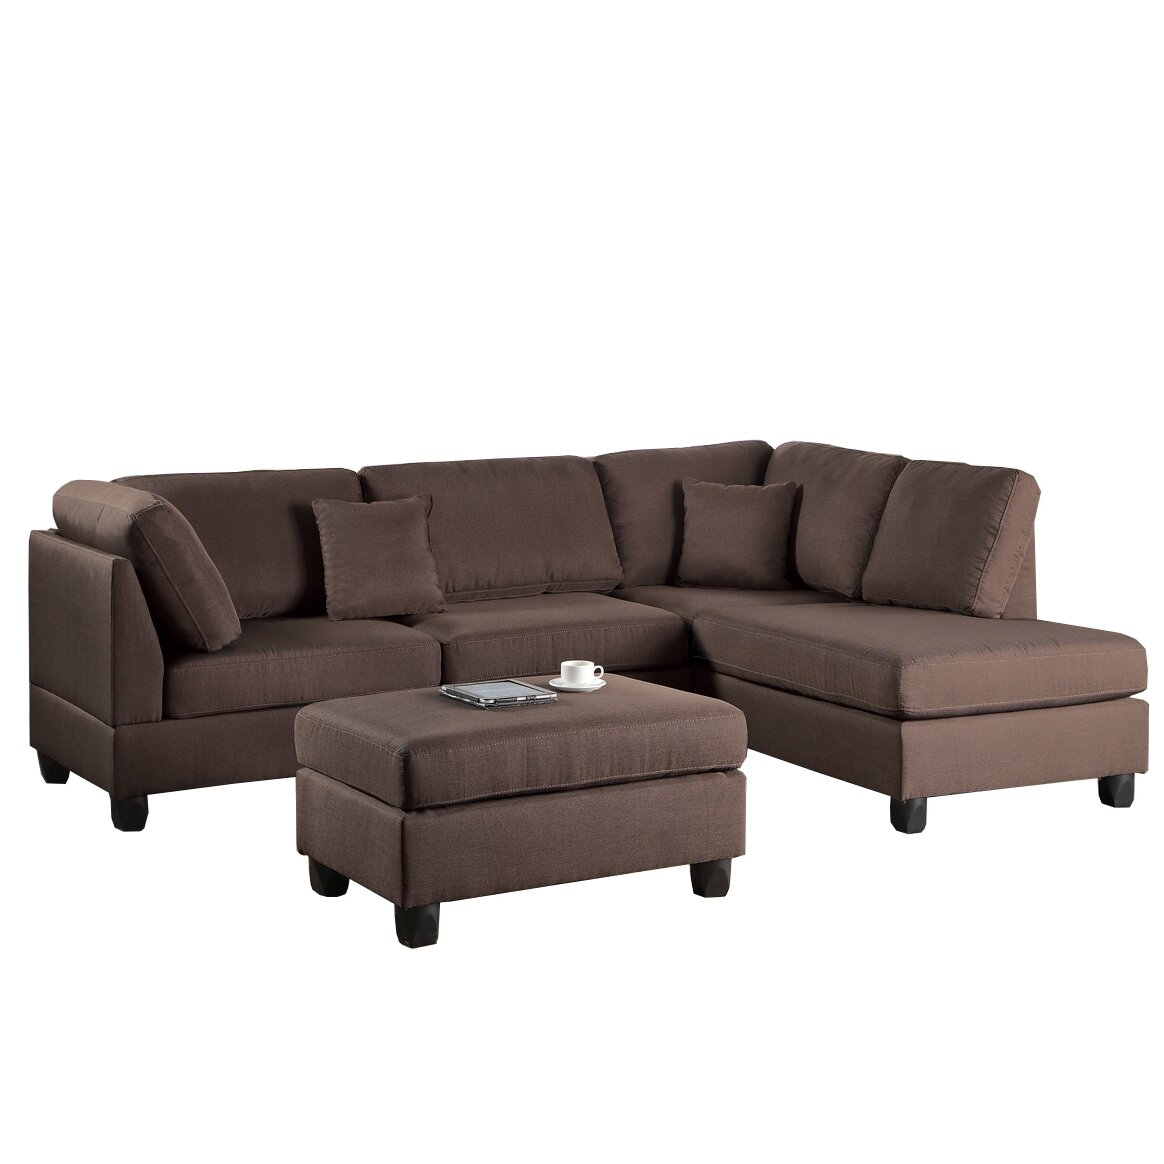 Poundex bobkona dervon reversible chaise sectional for Wayfair sectionals